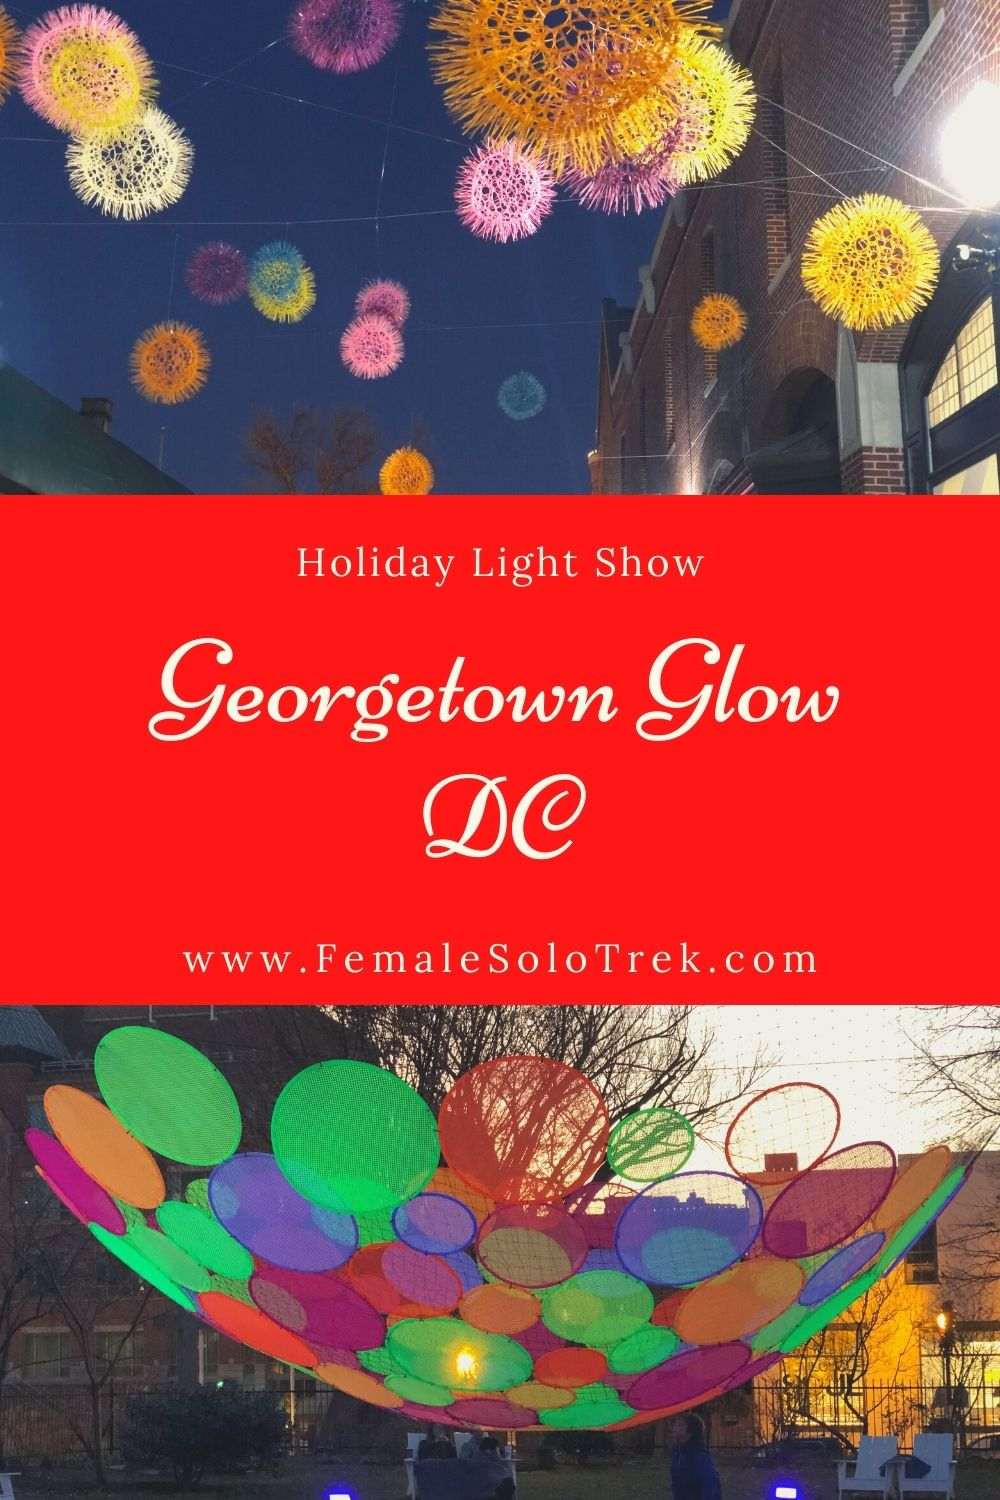 Georgetown Glow DC features holiday light installations in December.